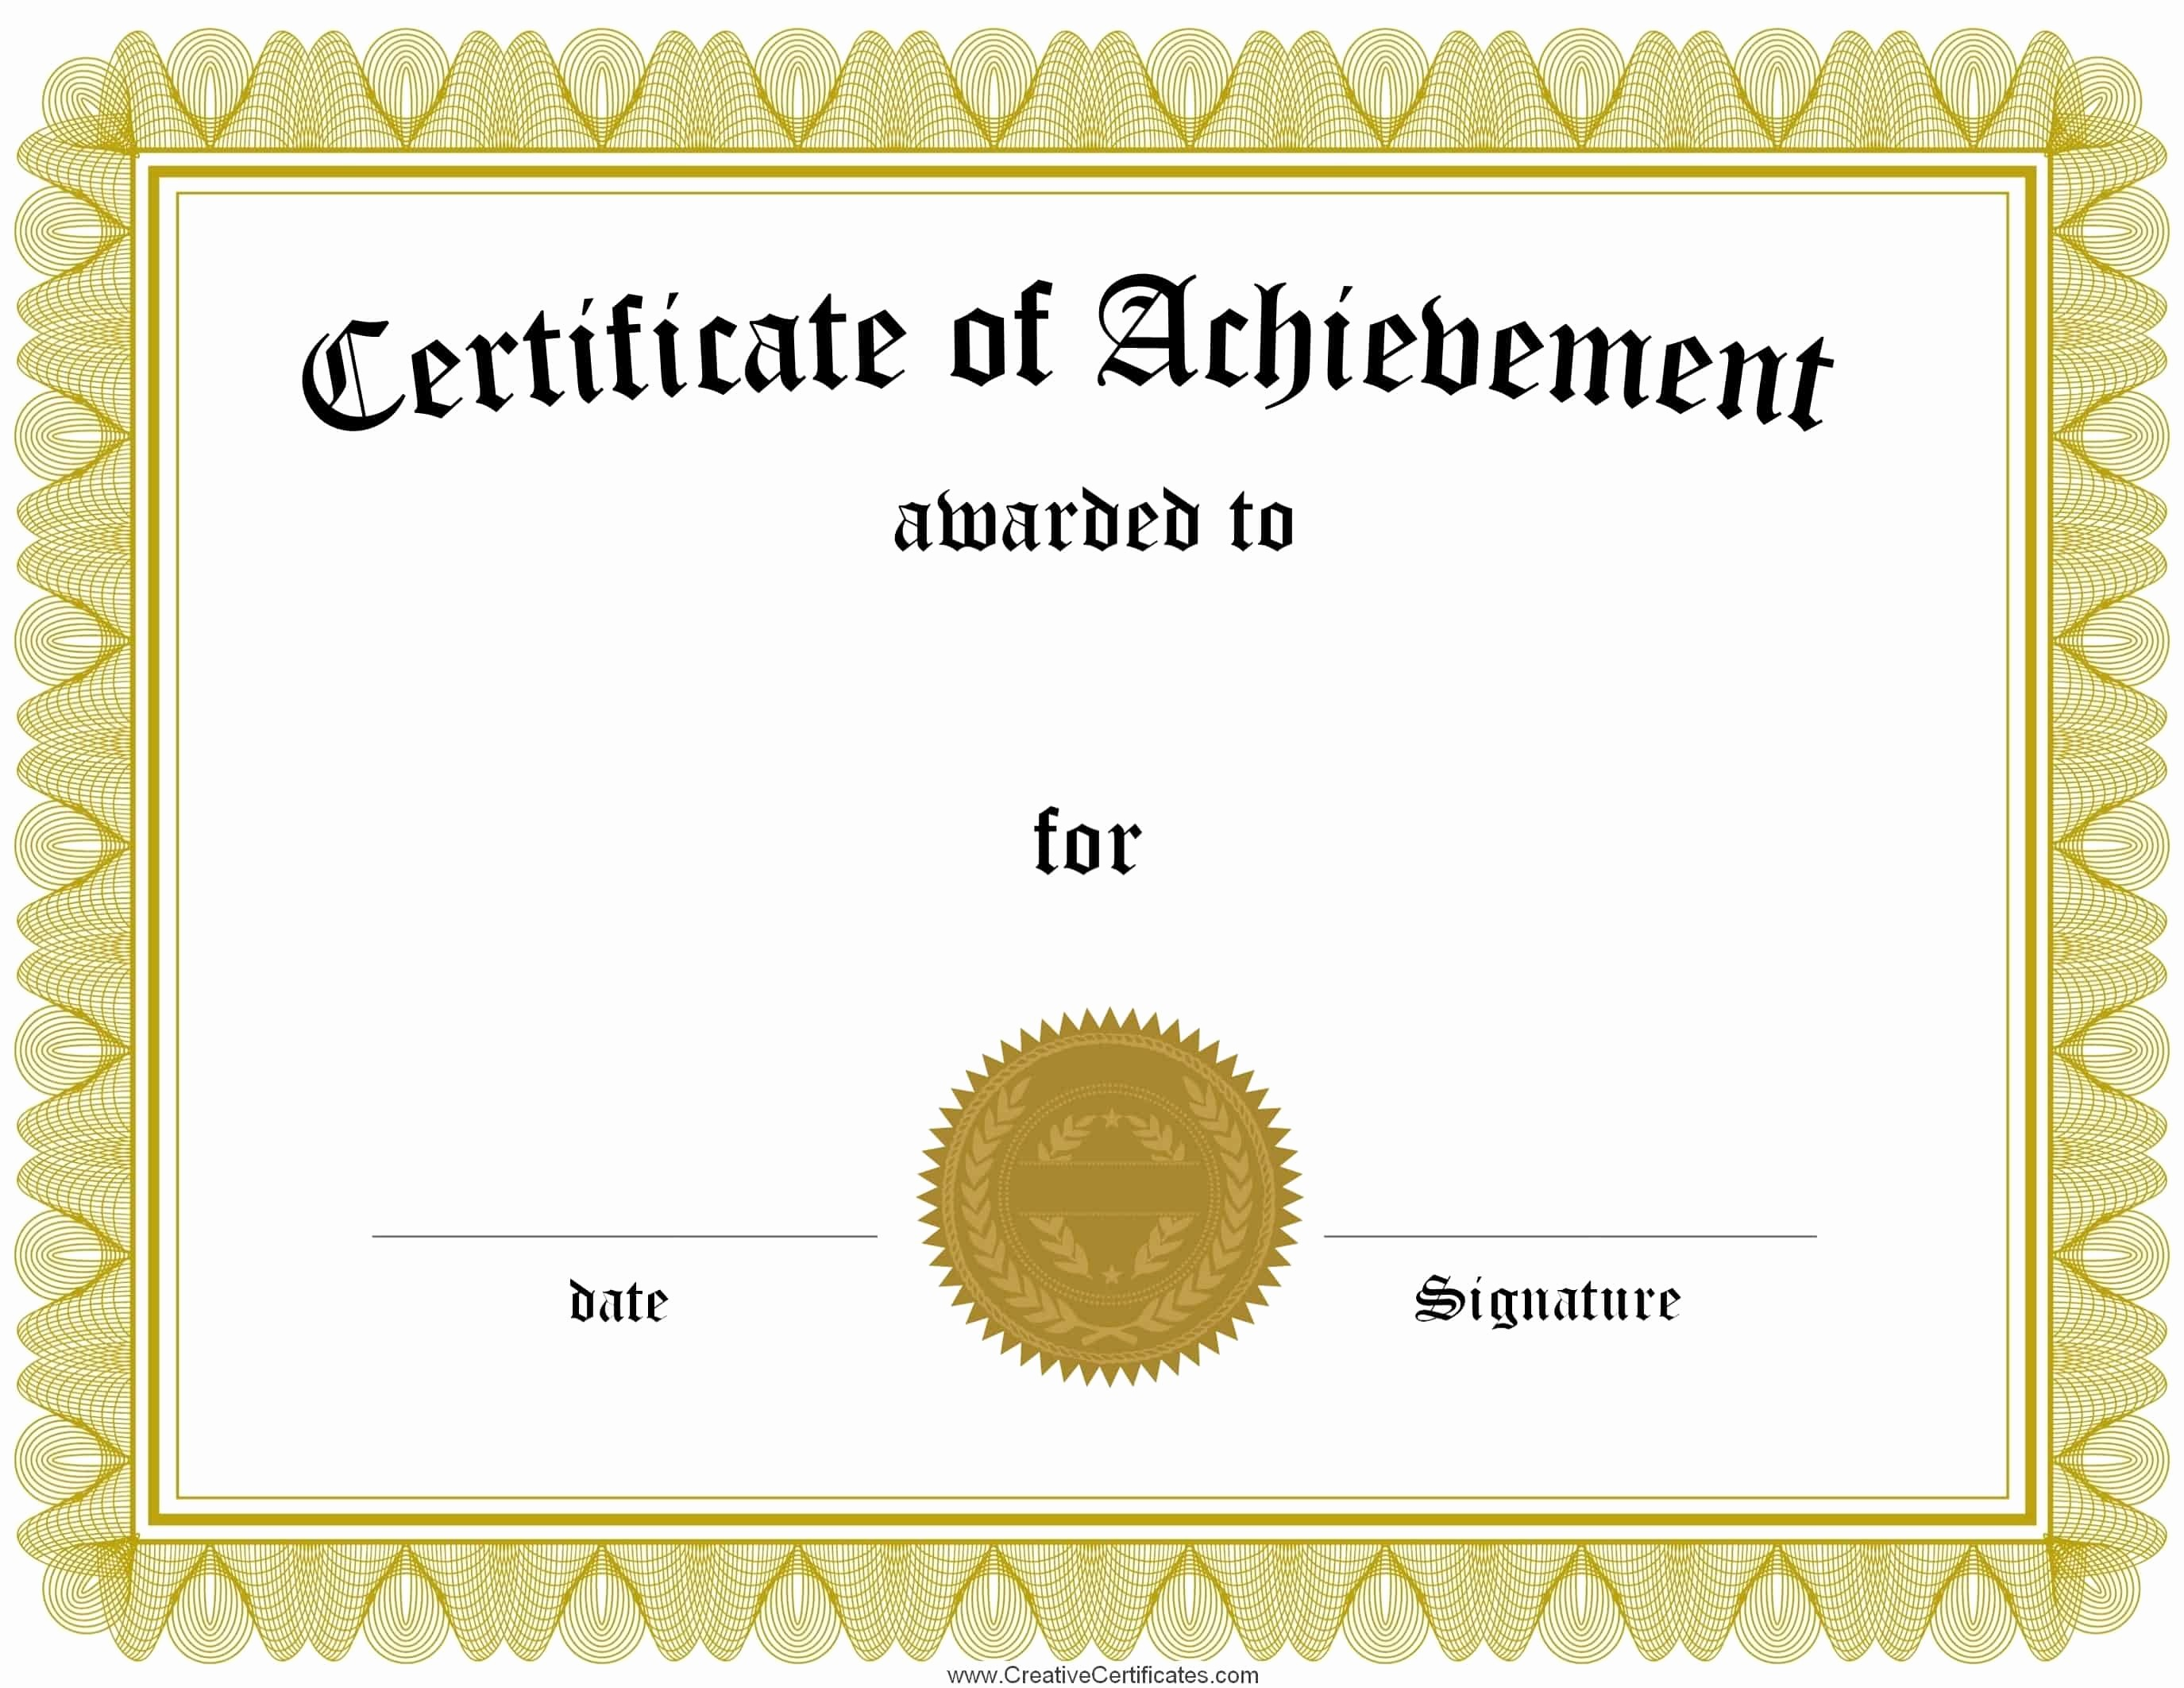 Blank Certificate Of Achievement Template Beautiful Free Customizable Certificate Of Achievement